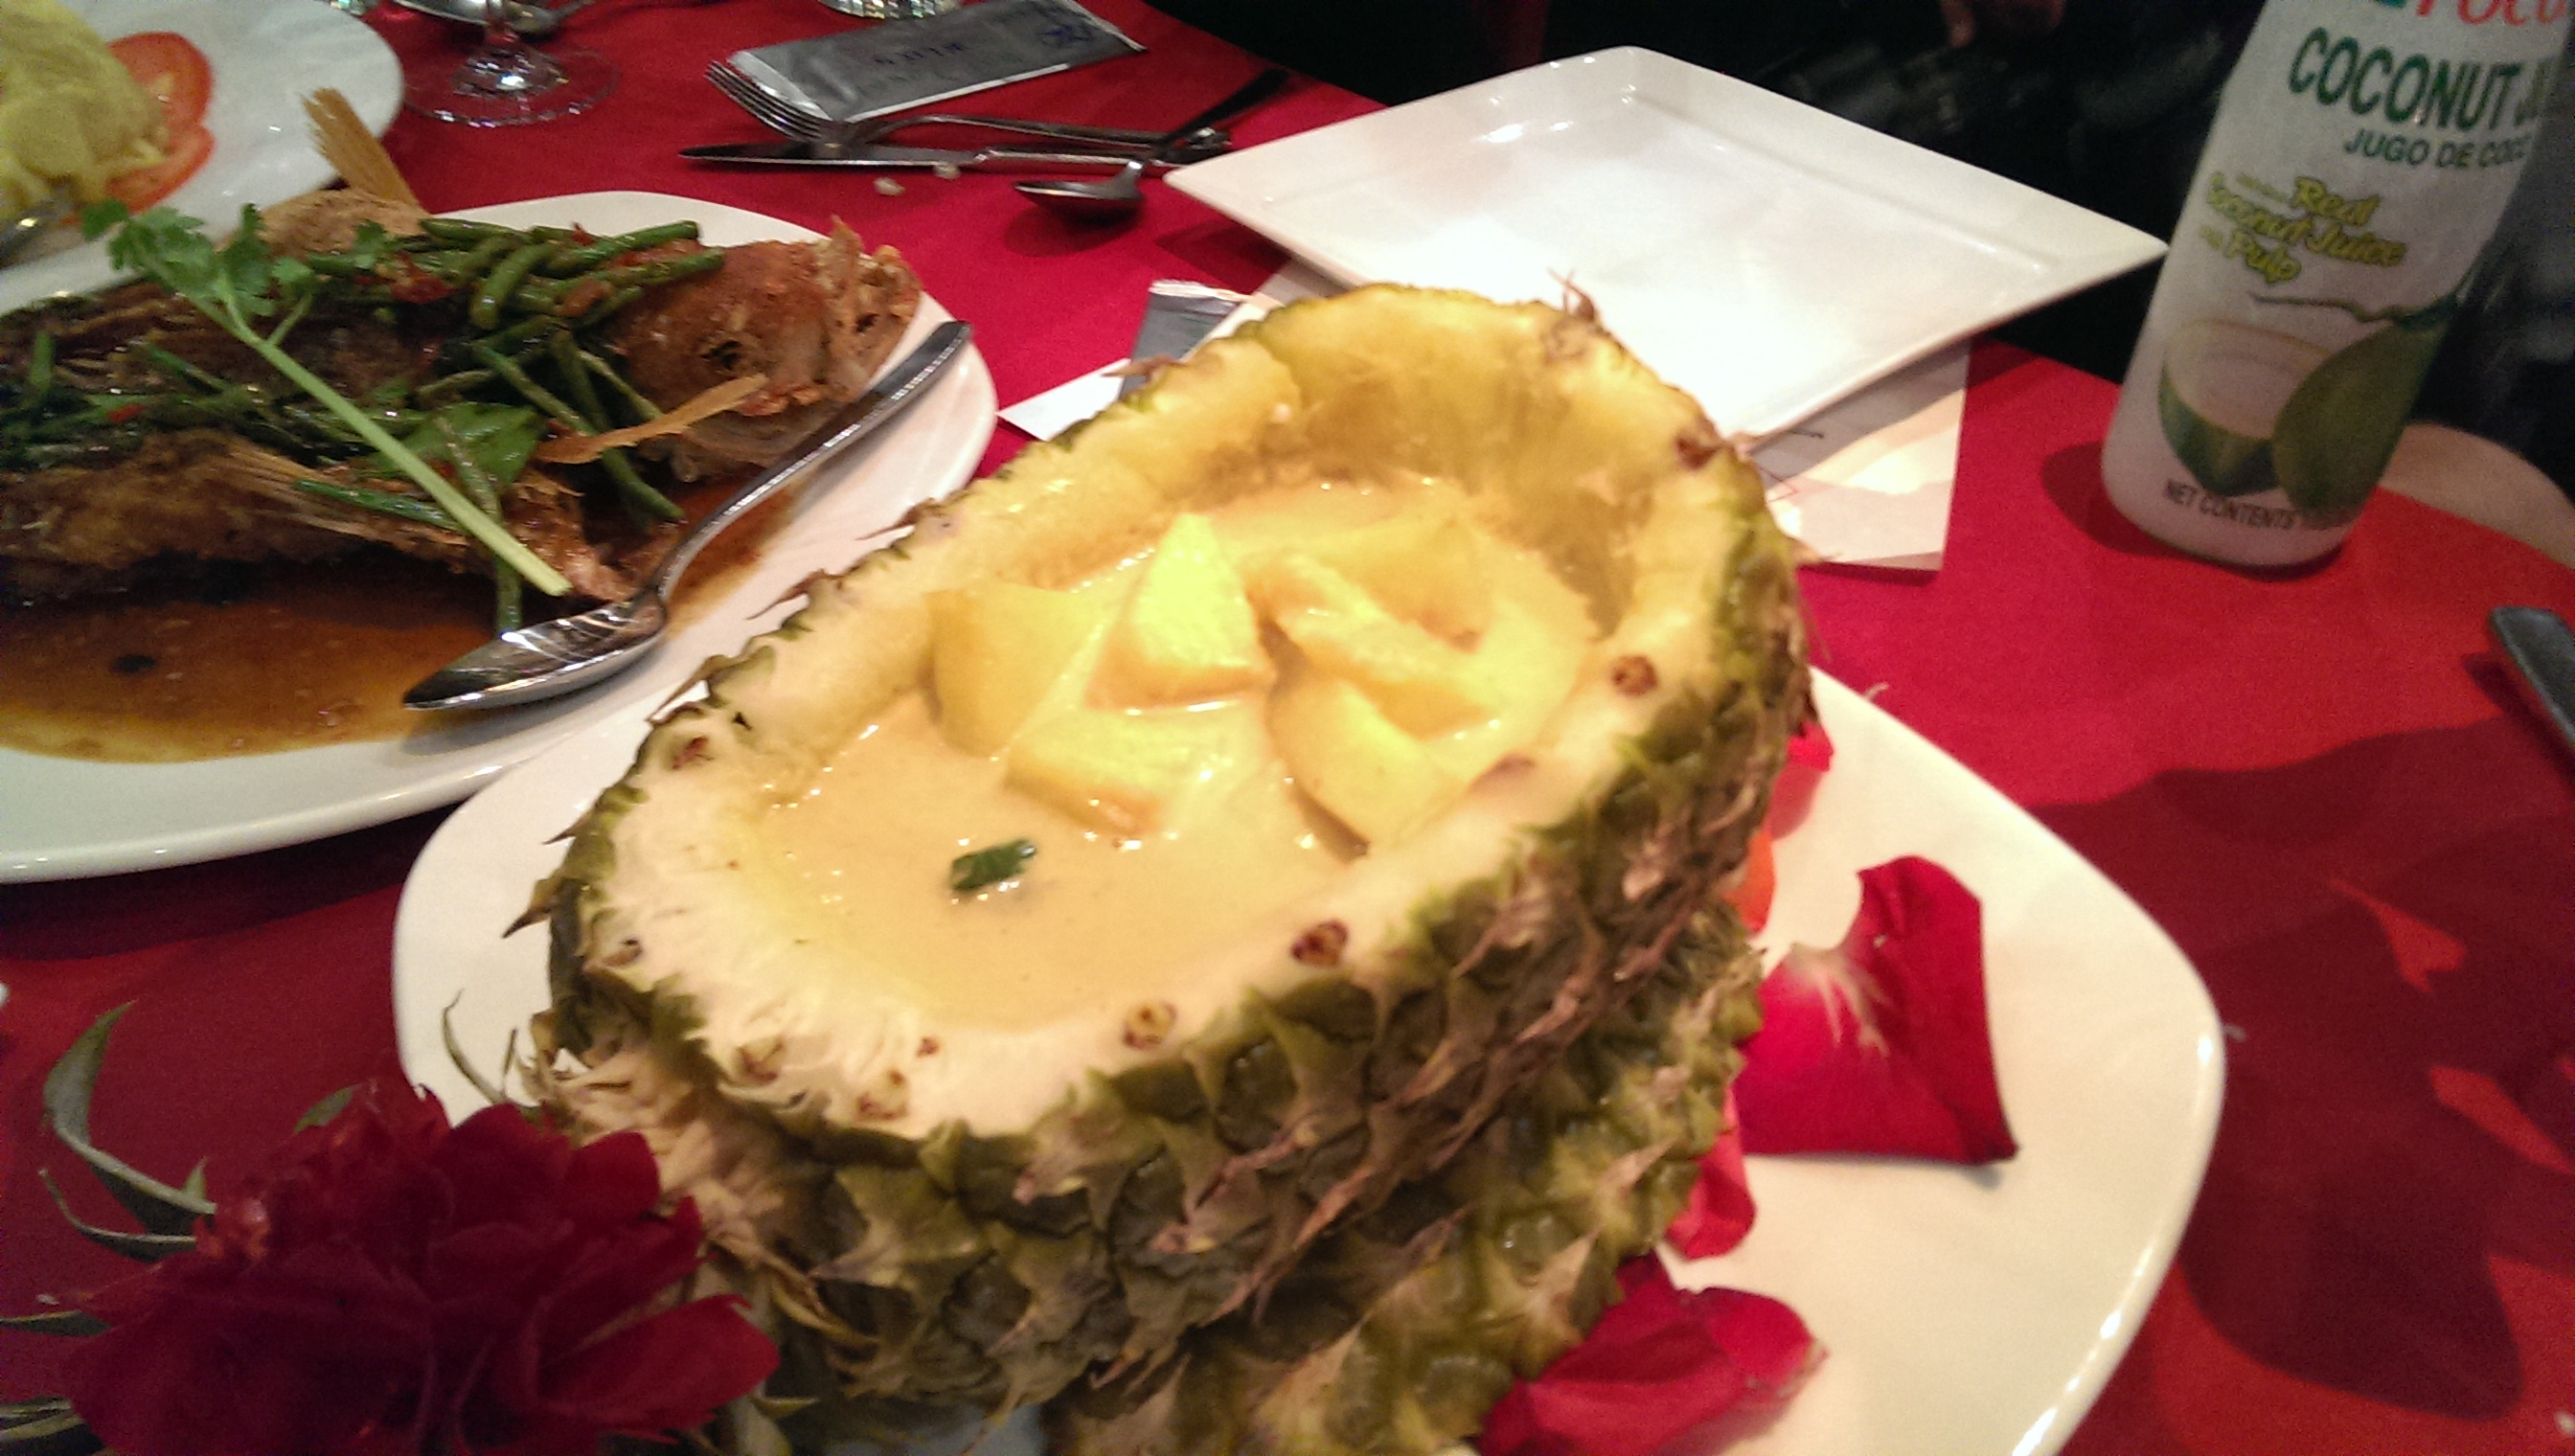 Pineapple tureen. More fragrant than a regular tureen.